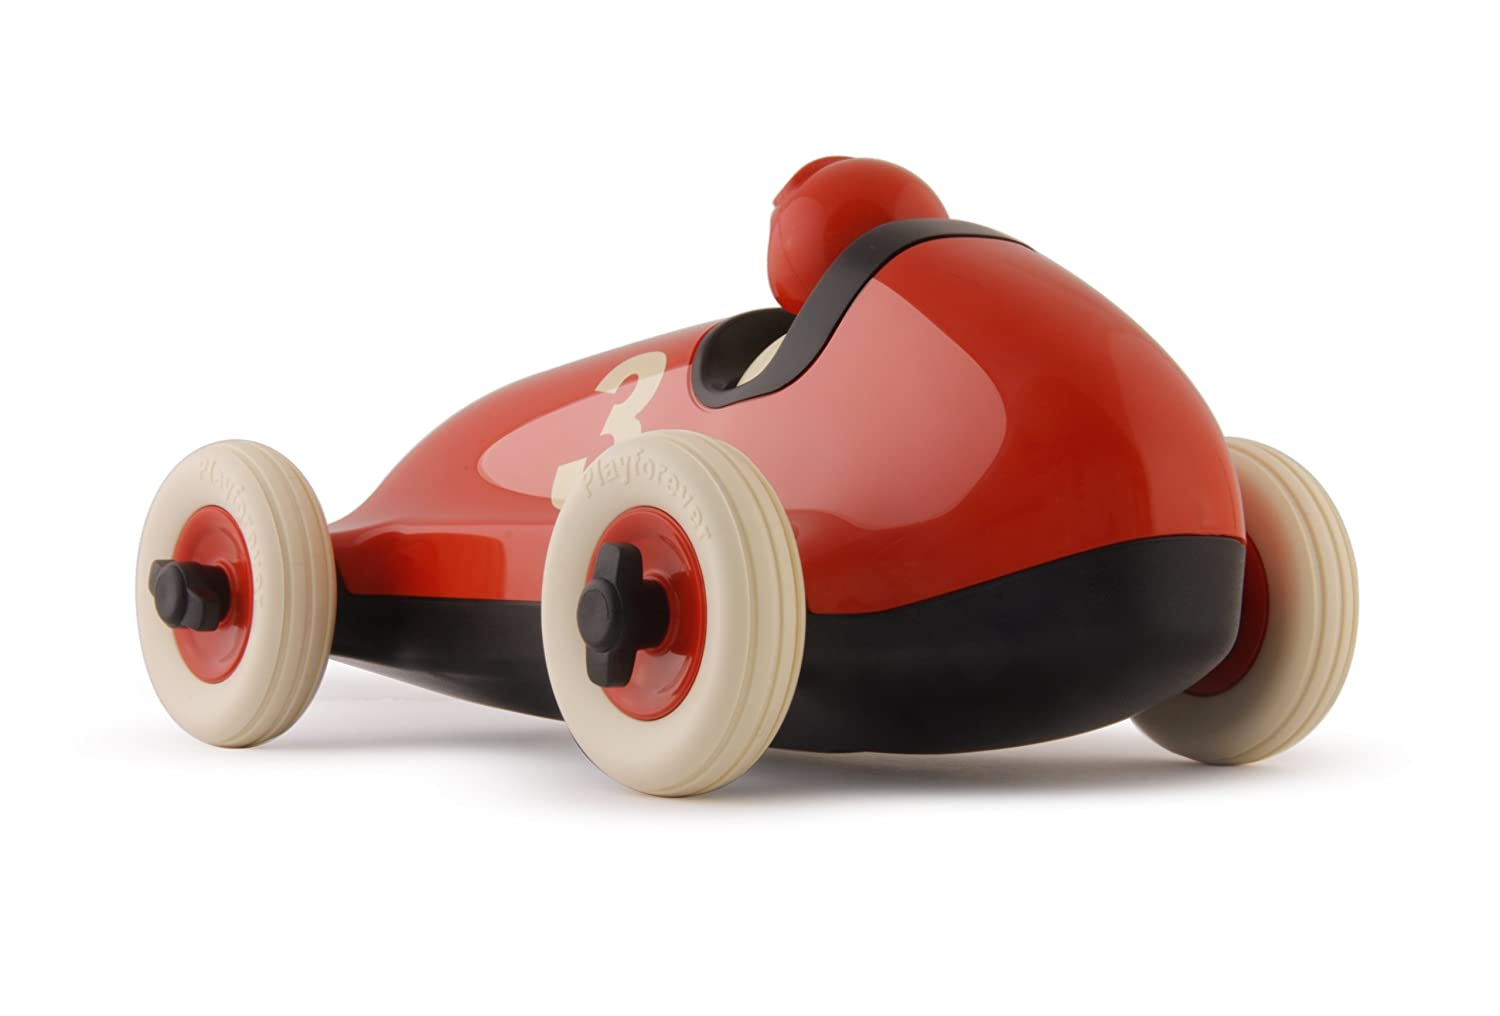 amazoncom playforever bruno racing car  orangered toys  games -